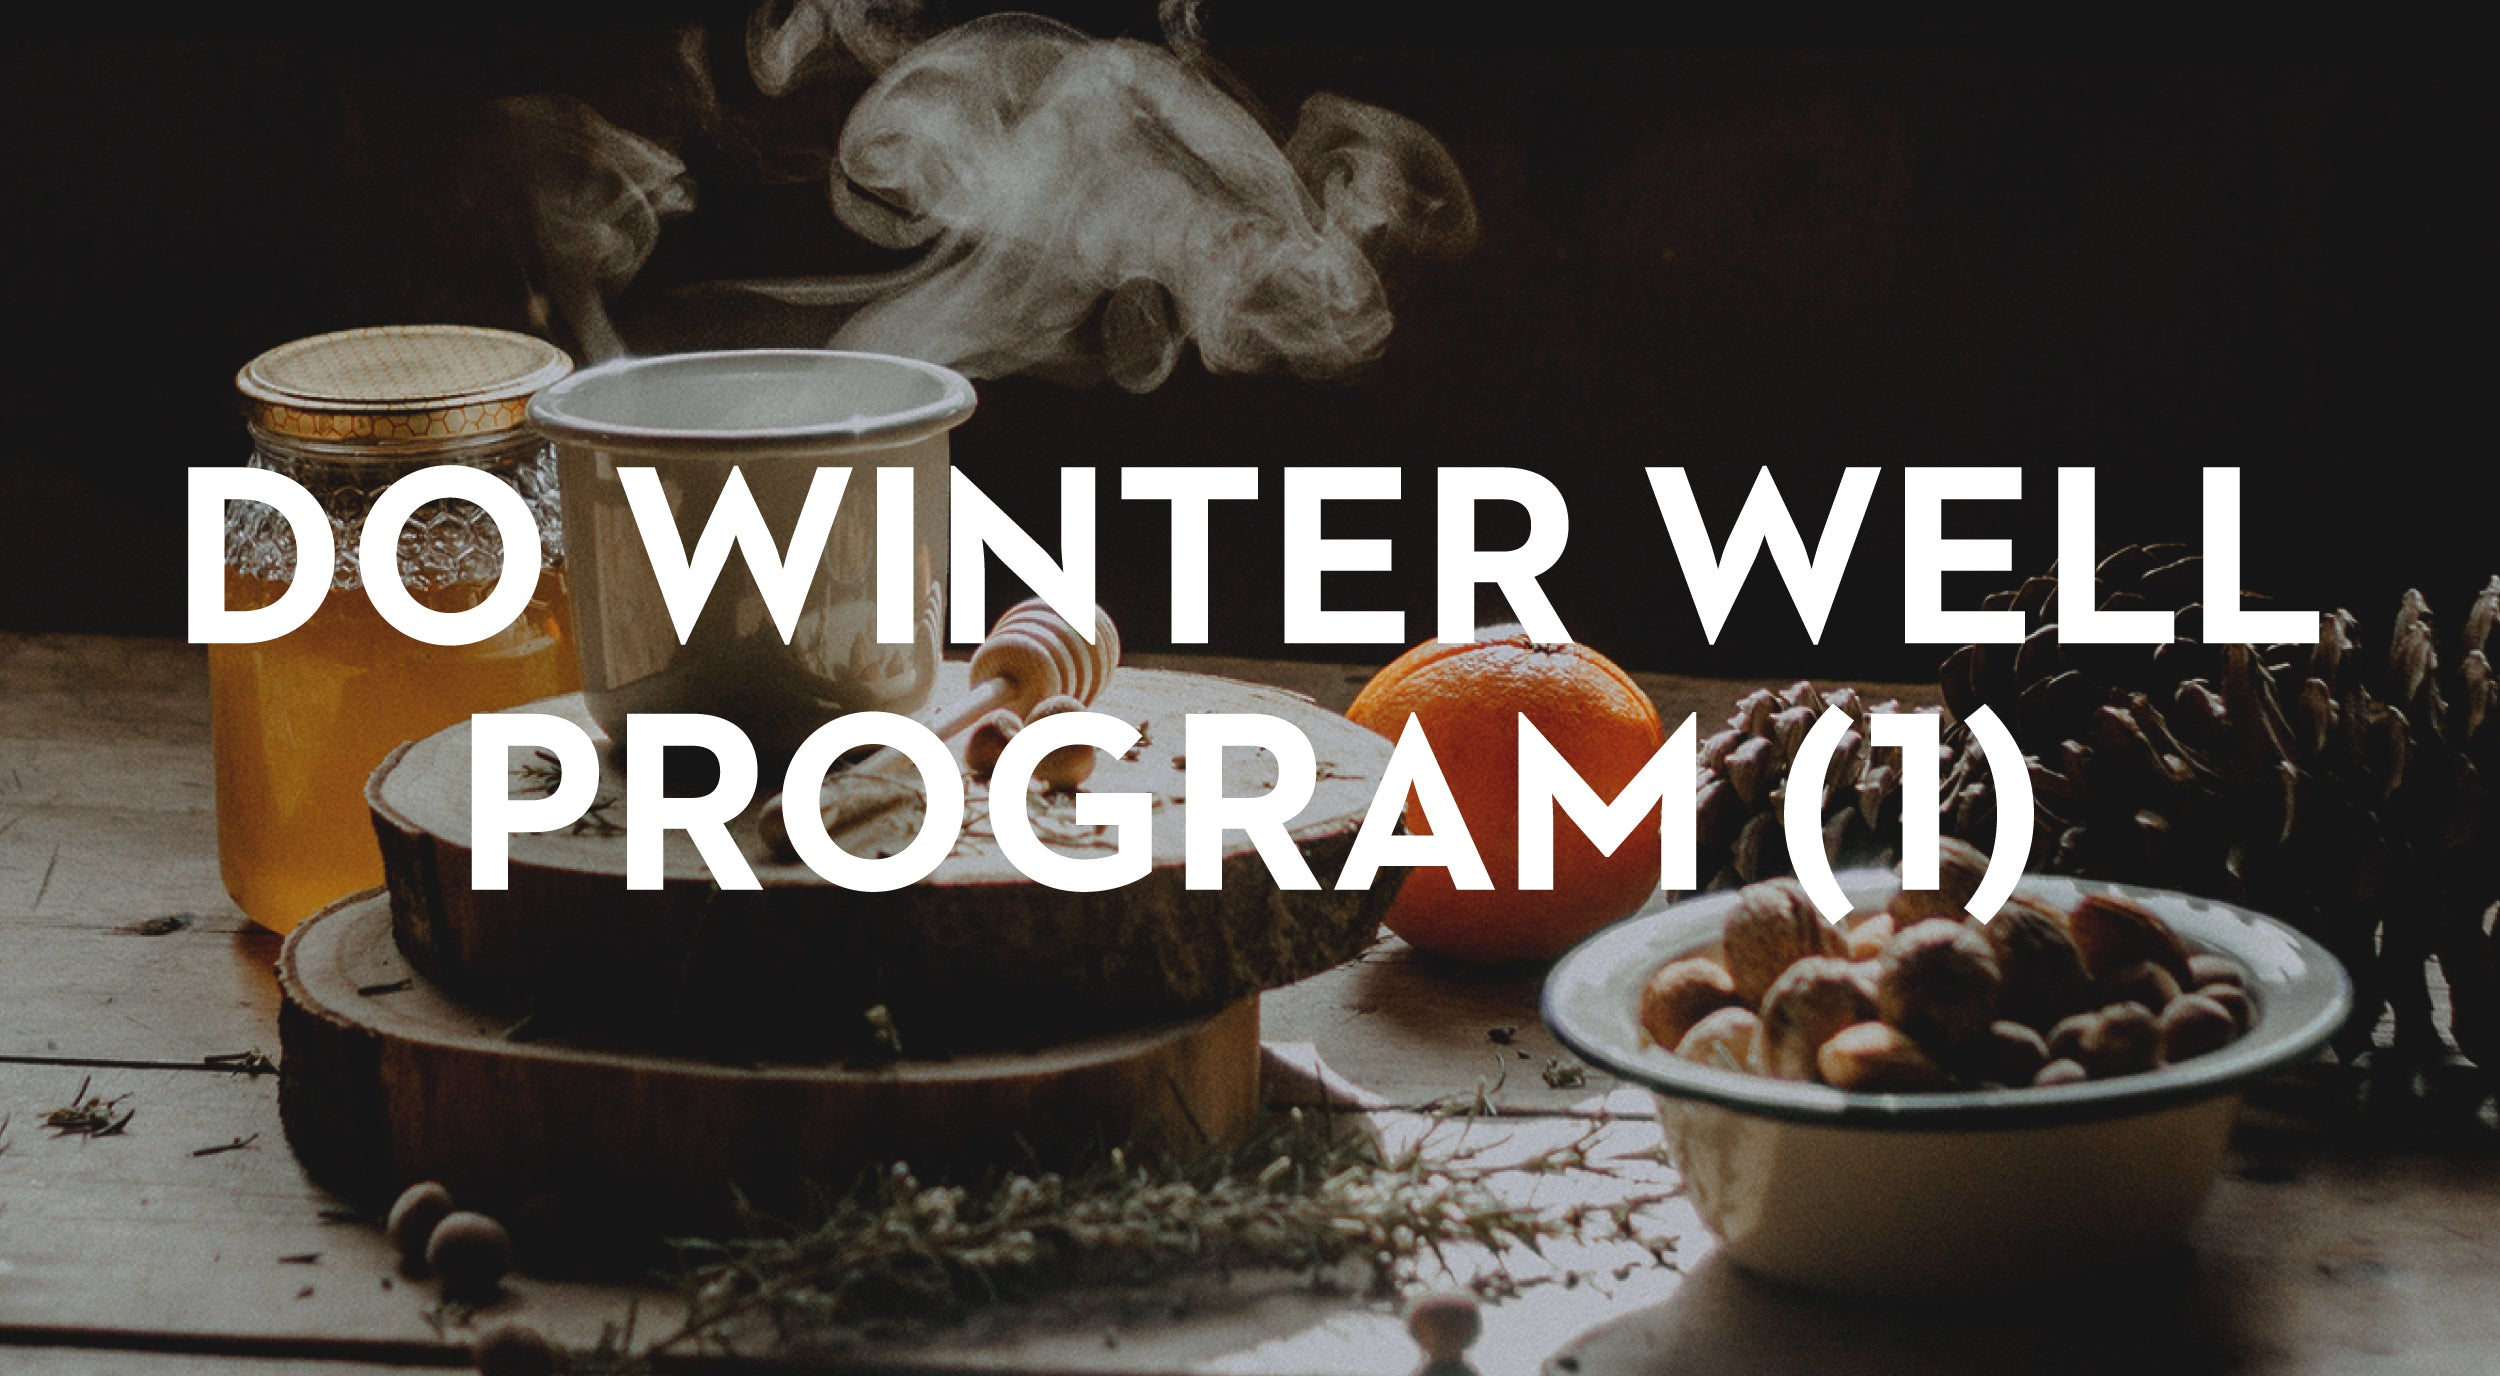 Do Winter Well Program 1